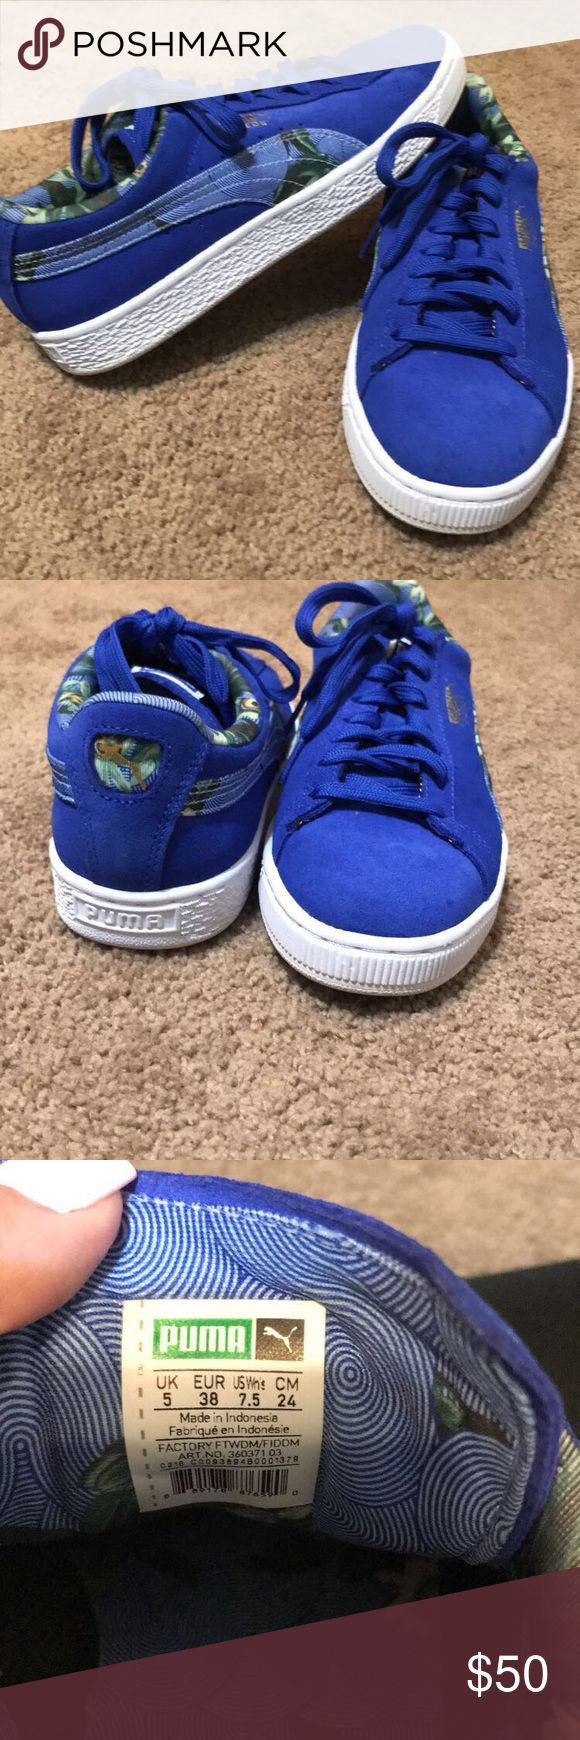 Blue Pumas Womens Blue Pumas Womens Size 7.5. Only been worn once. Perfect condition. Willing to negotiate on price!! Personally can't find these in store or online anymore Shoes Sneakers